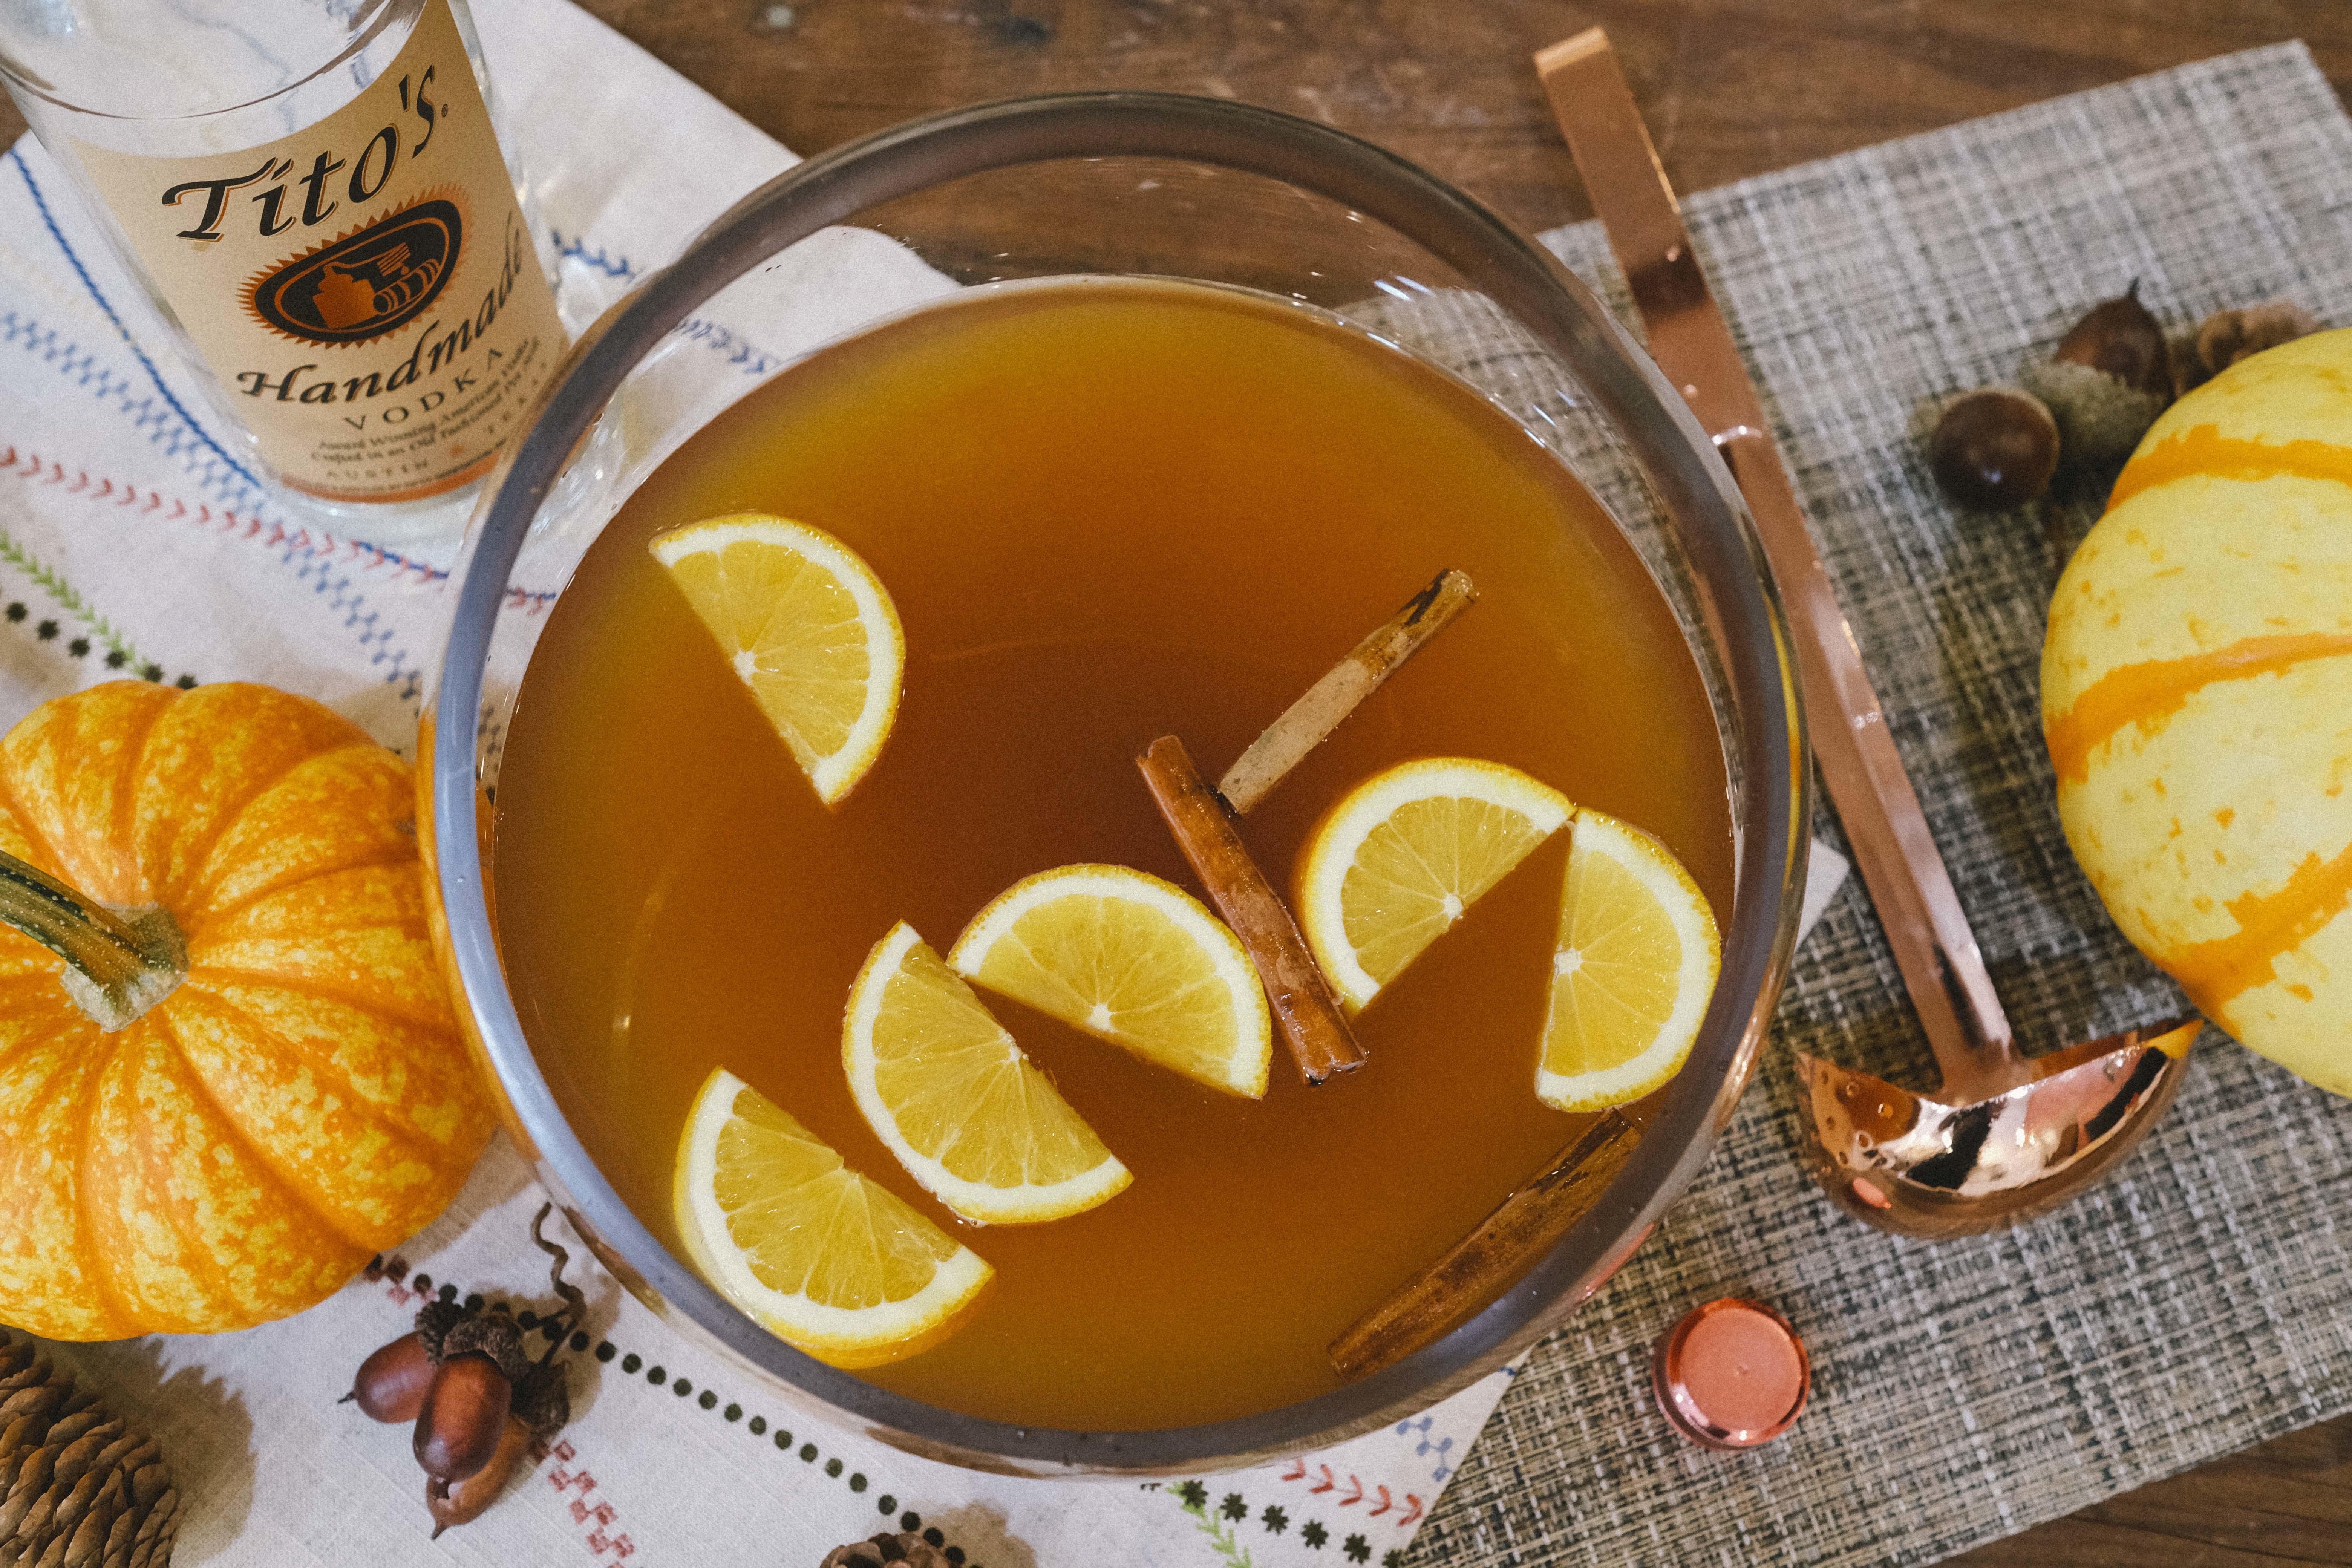 Tito's Vodka Harvest Punch cocktail with oranges and cinnamon